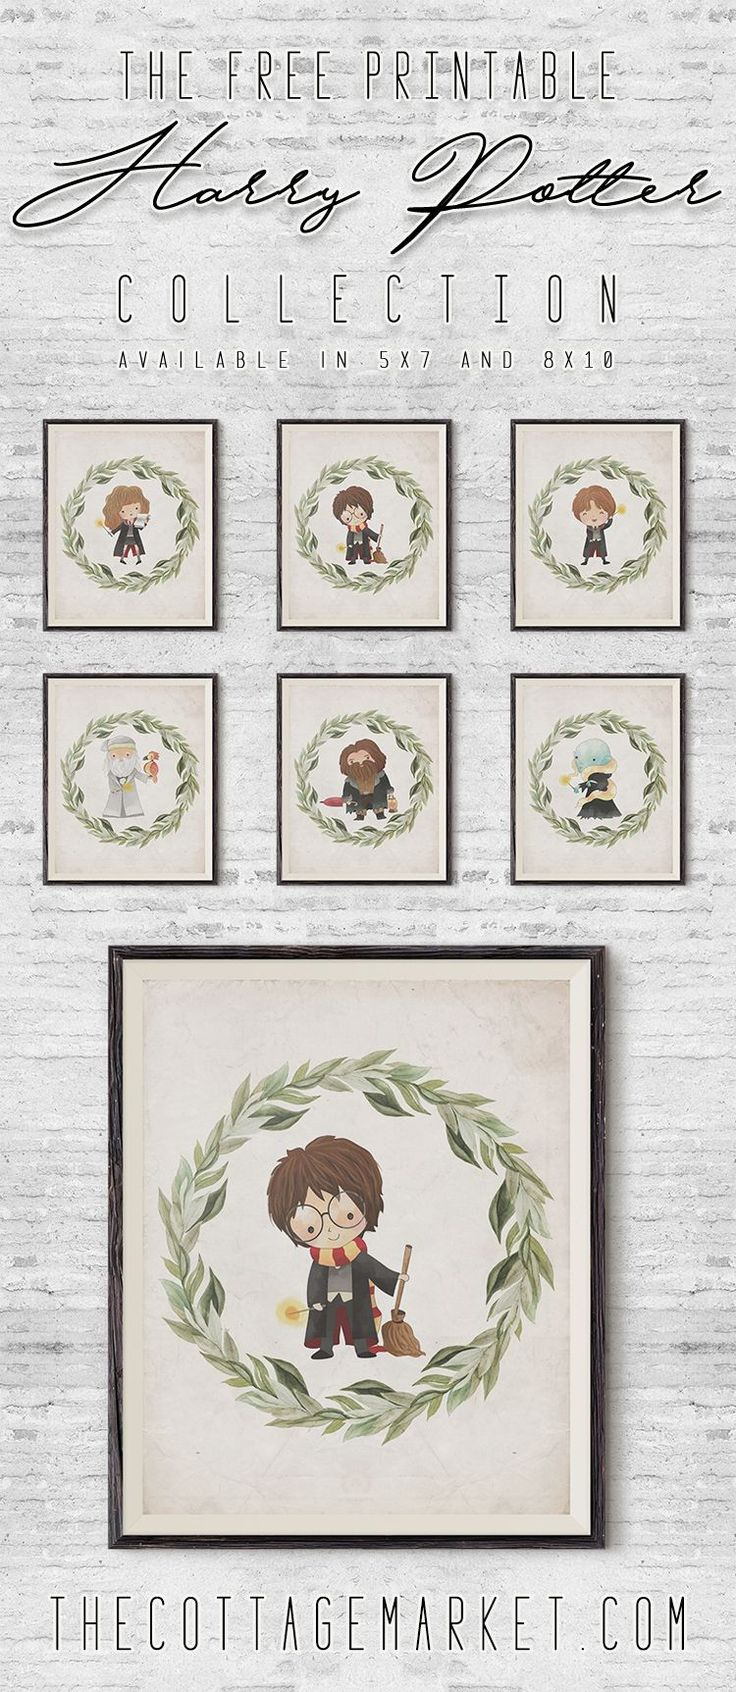 It's FREE PRINTABLE time and I have a feeling that you are going to find this Free Printable Harry Potter Collection Magical! You are going to find Harry, Ron, Hermione and the whole cast of characters to form a 6 Free Printable Set. Perfect for Halloween Decorations but these are so cute I have a …